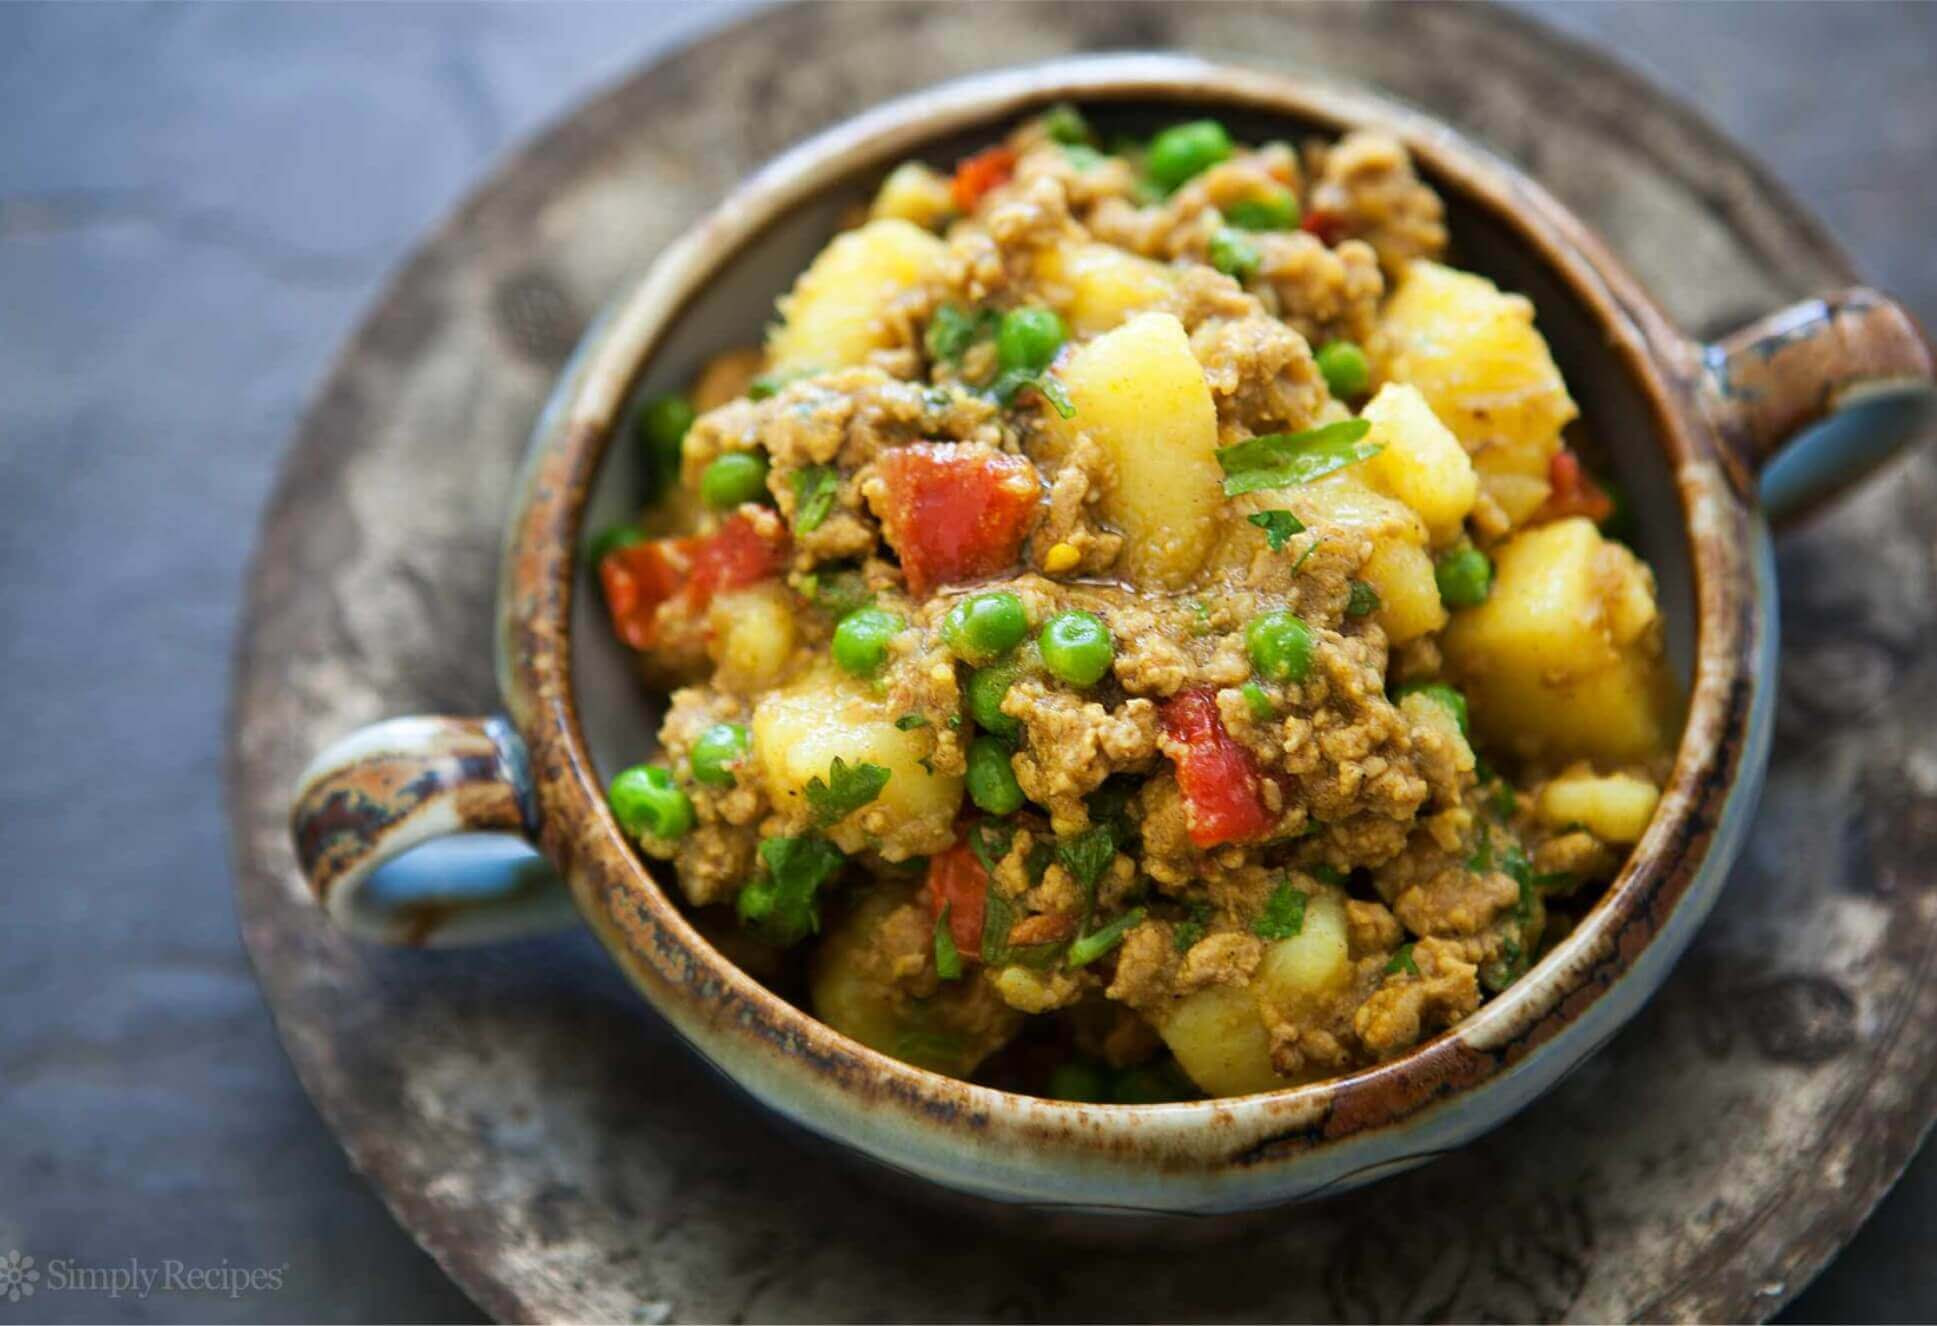 22 Turkey Mince Recipes You've Never Tried Before